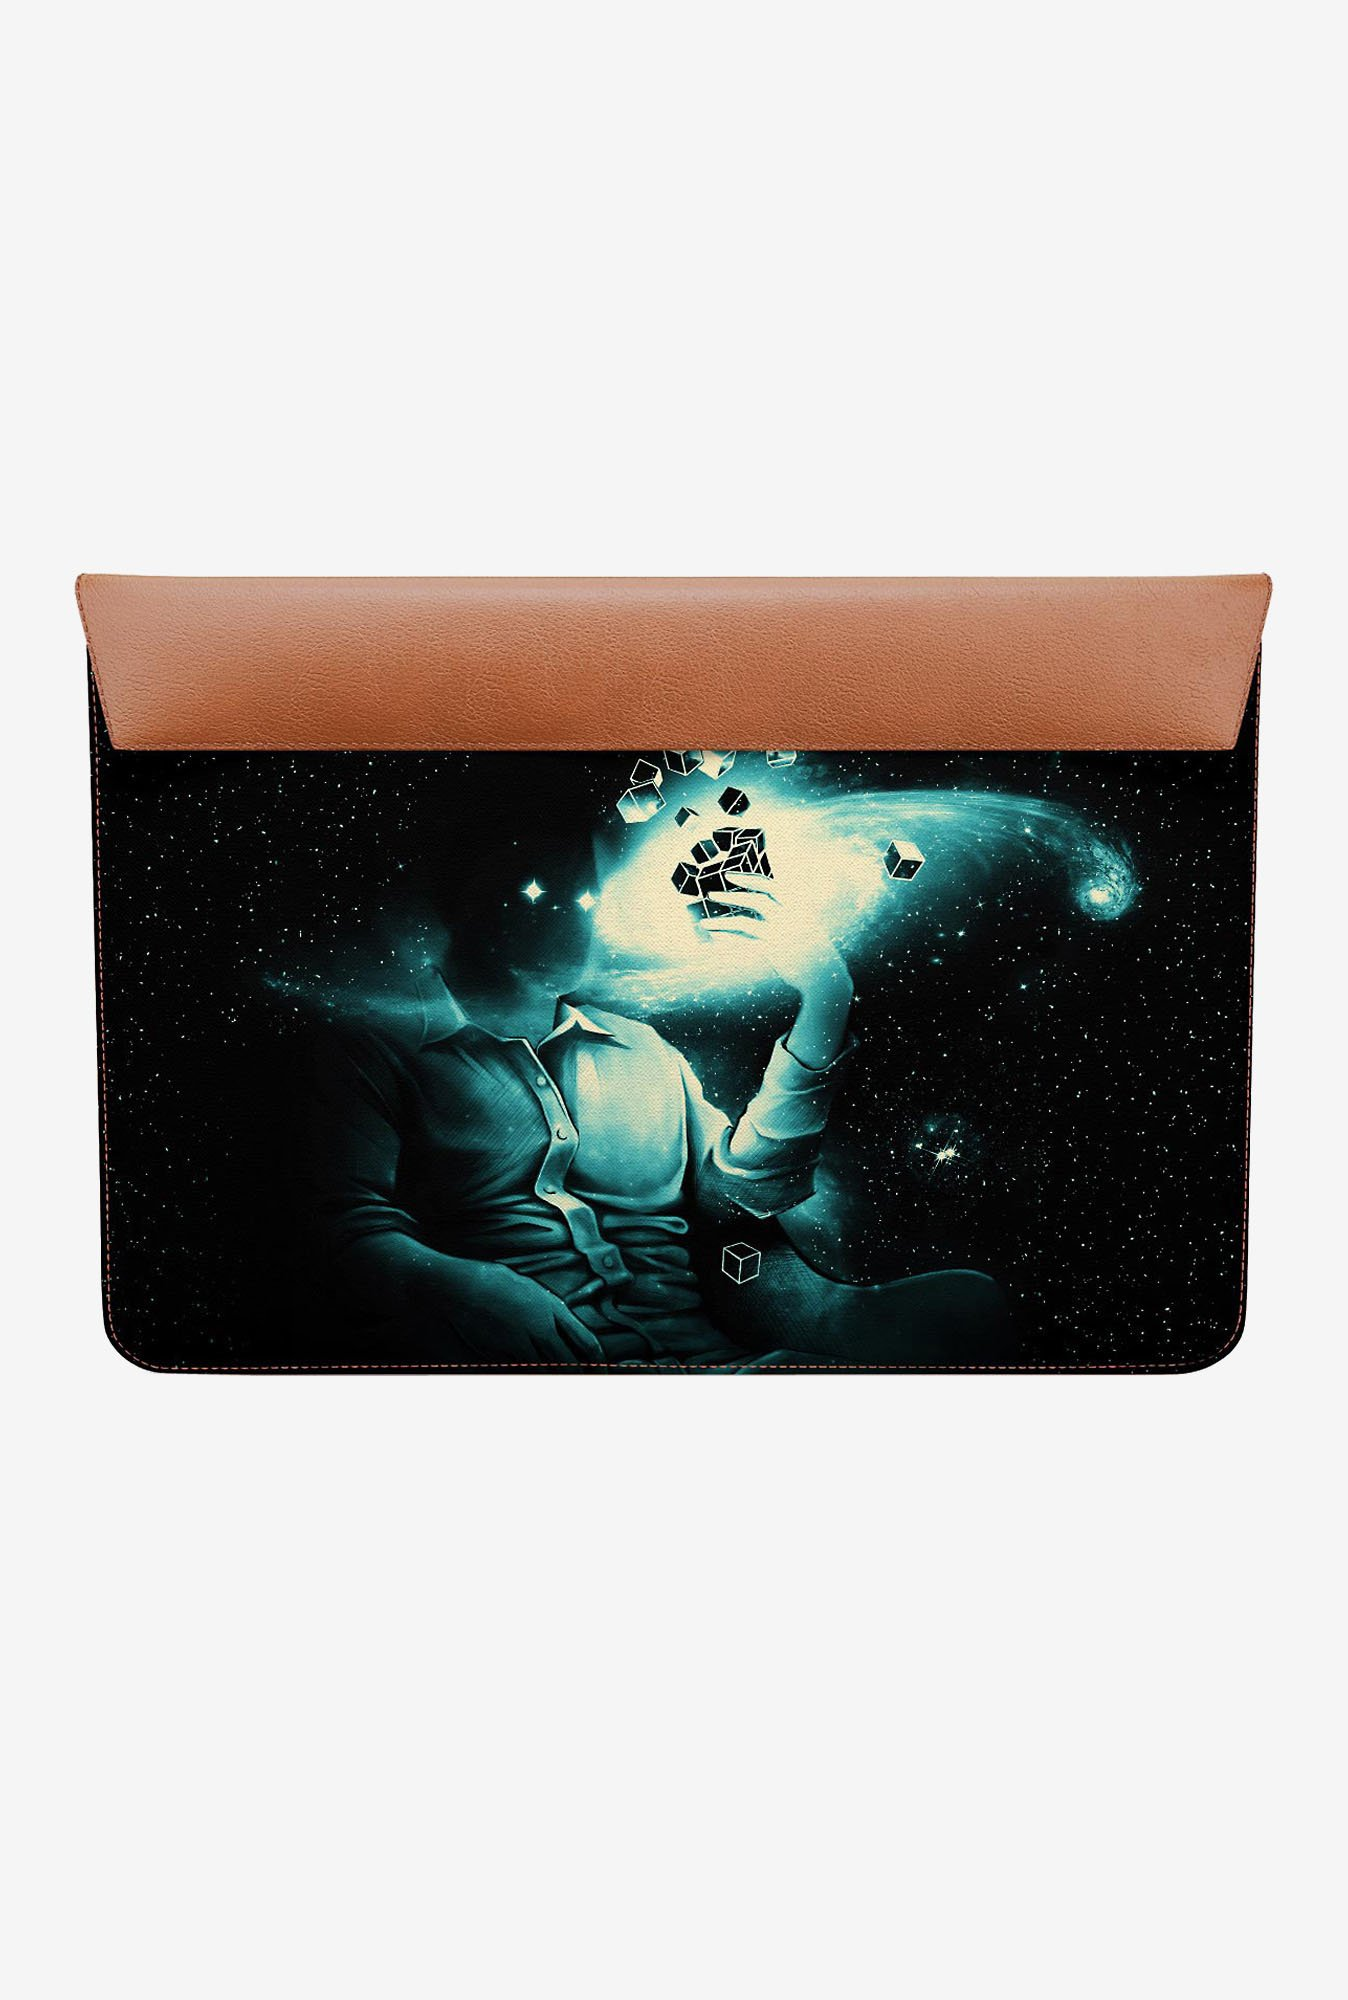 DailyObjects The Solution MacBook 12 Envelope Sleeve